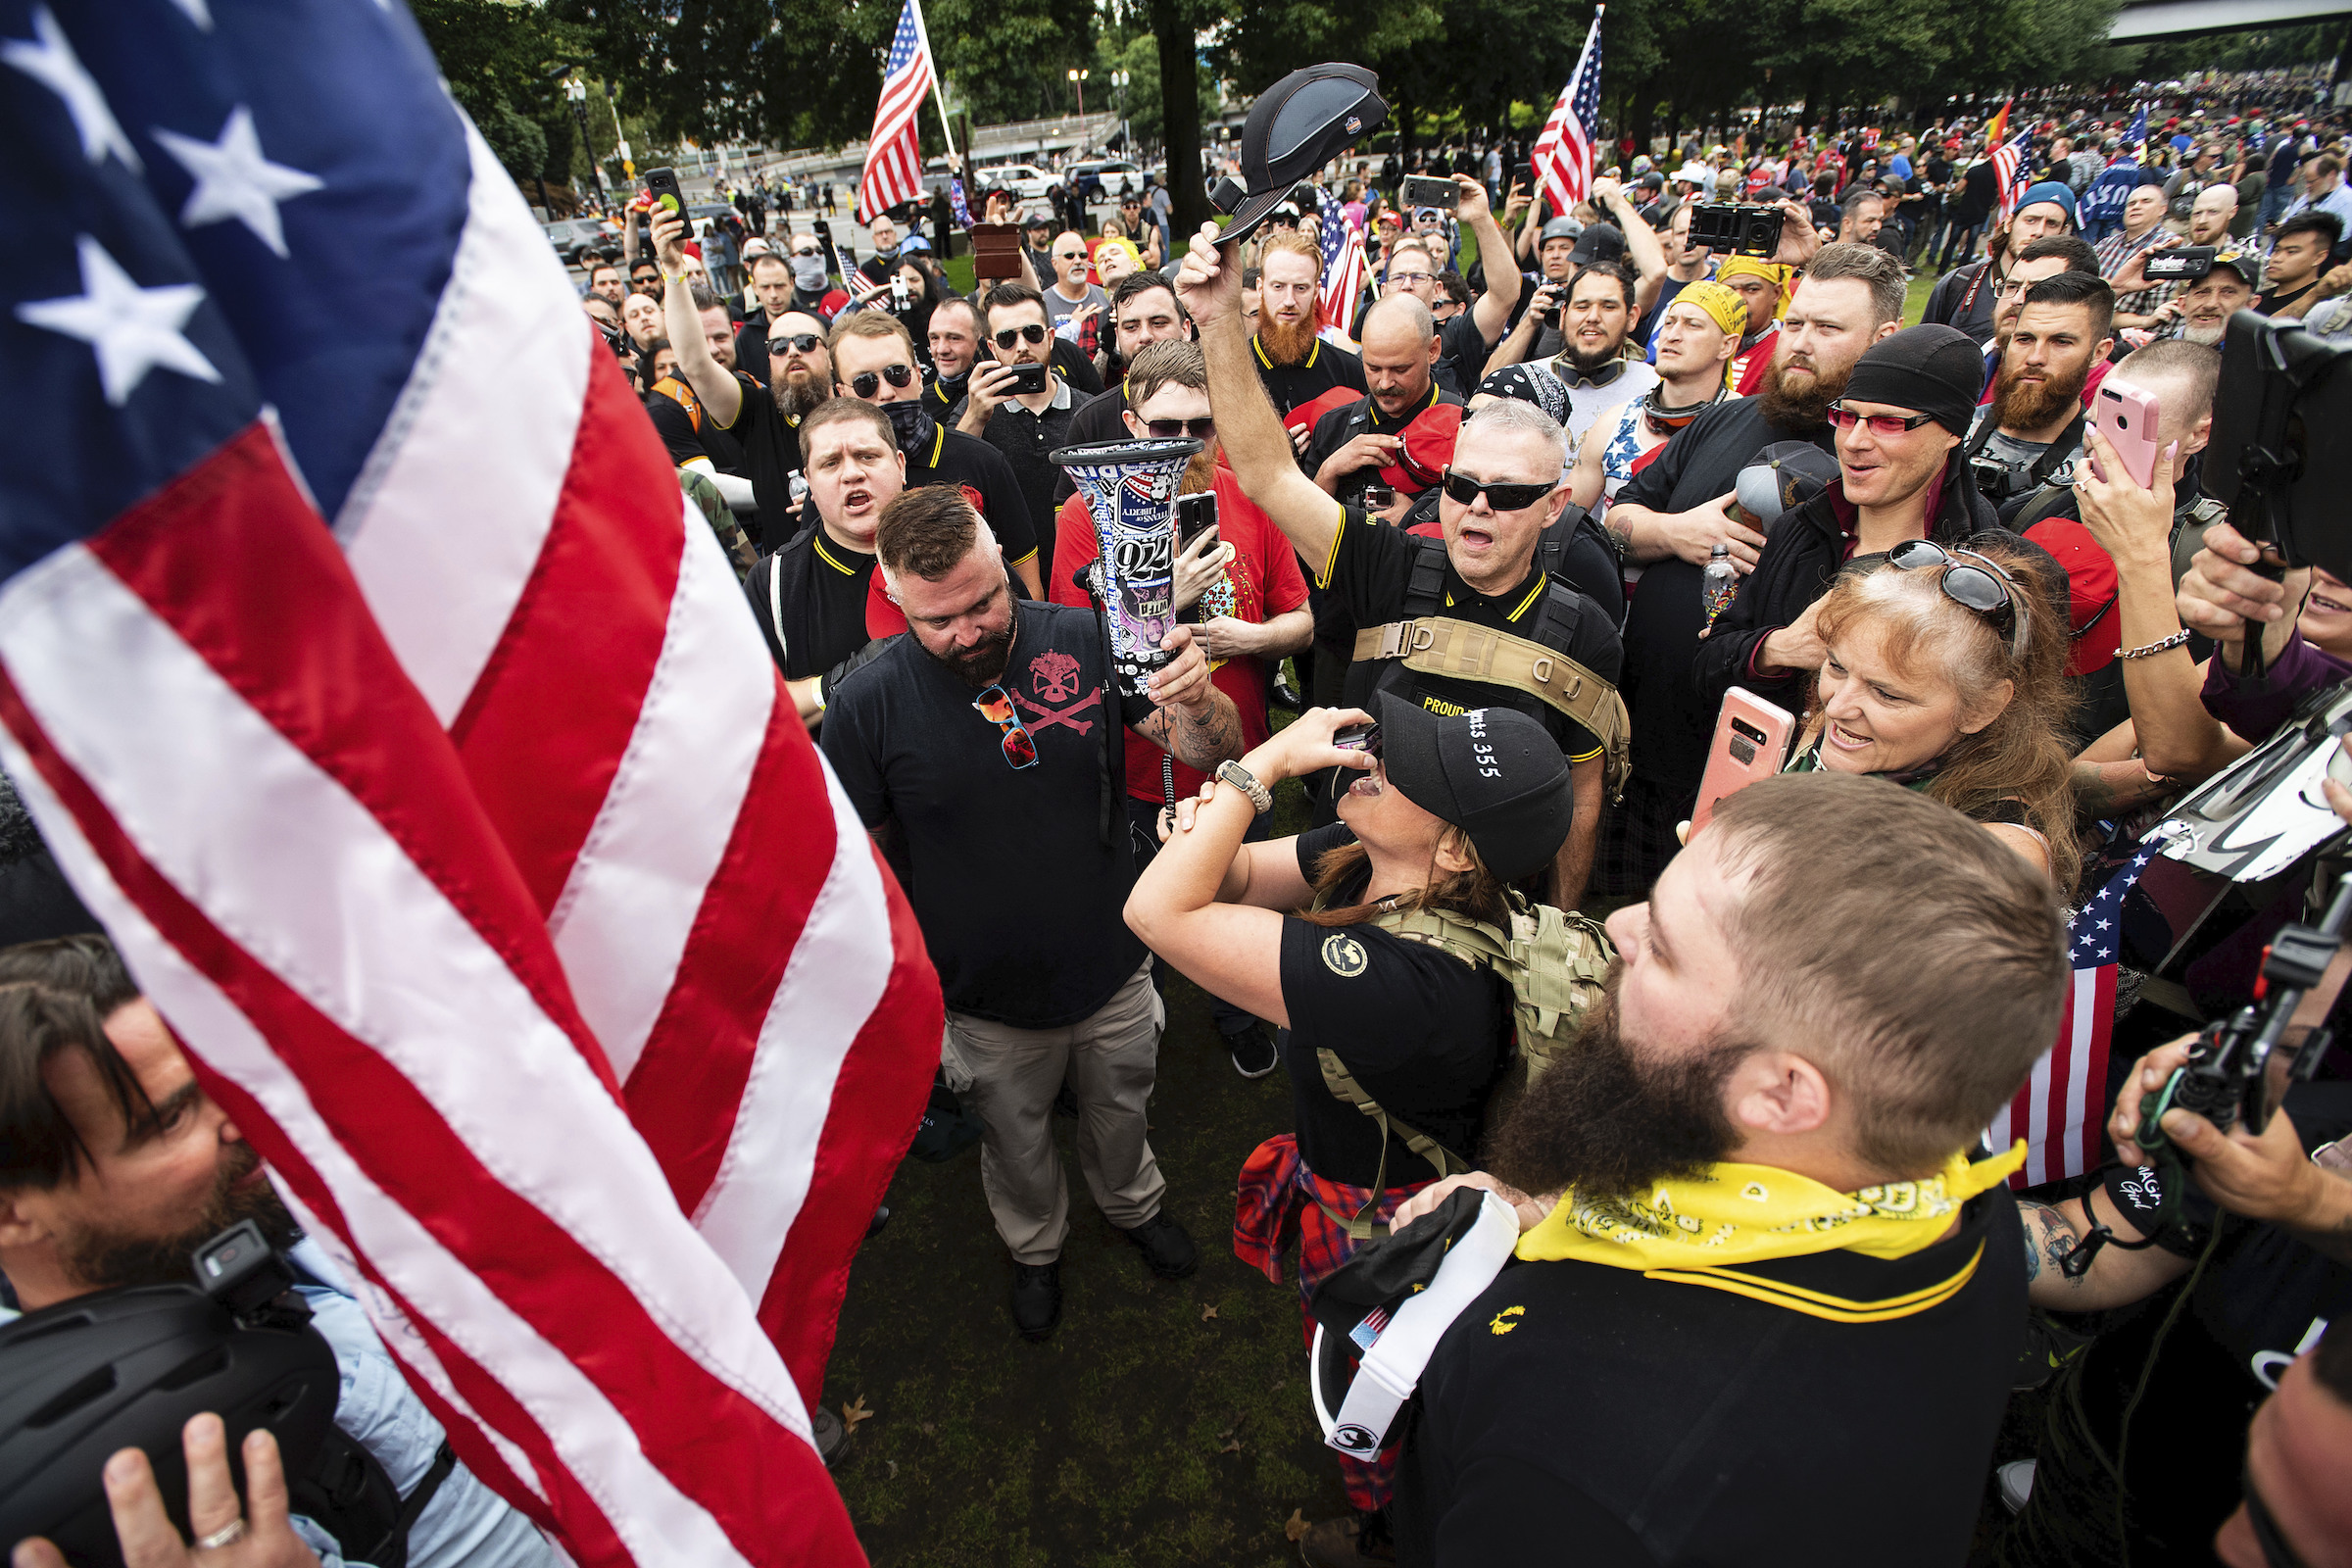 Members of the Proud Boys and other right-wing demonstrators plant a flag in Tom McCall Waterfront Park during a rally in Portland, Ore on August 17, 2019.